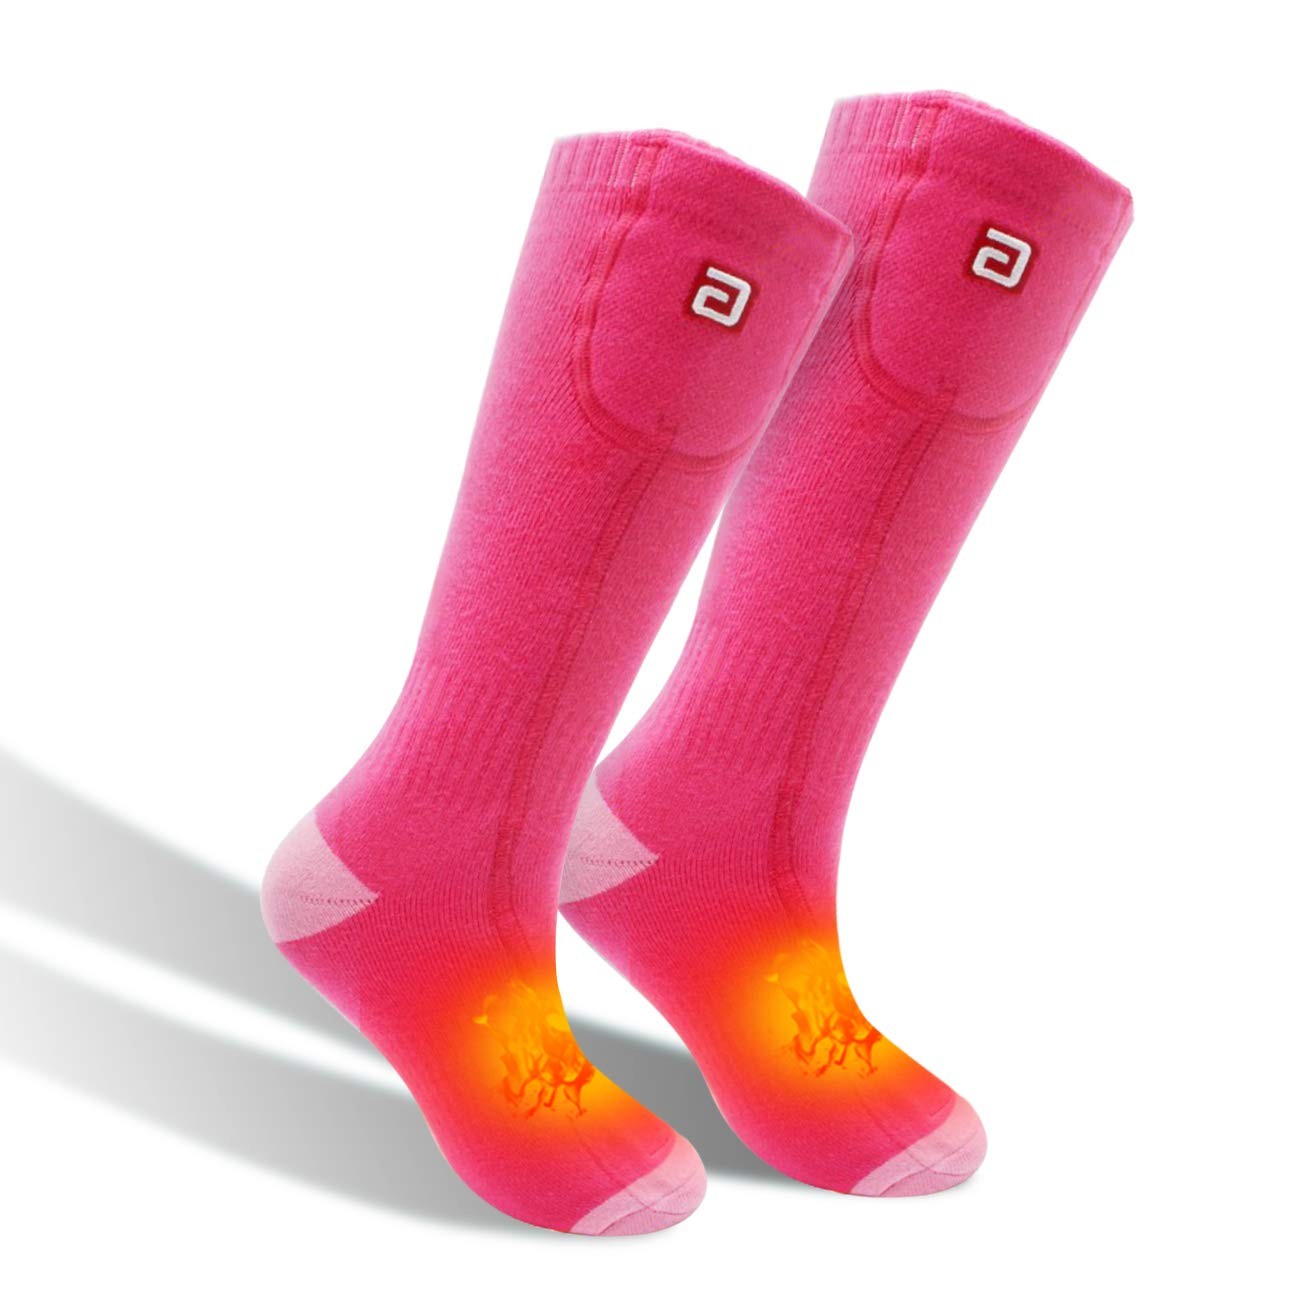 Men Women Socks Electric Socks Heated Socks for Chronically Cold Feet, Rechargeable Batteries Socks Hiking Socks Skiing Socks Socks(Pink) by Highting